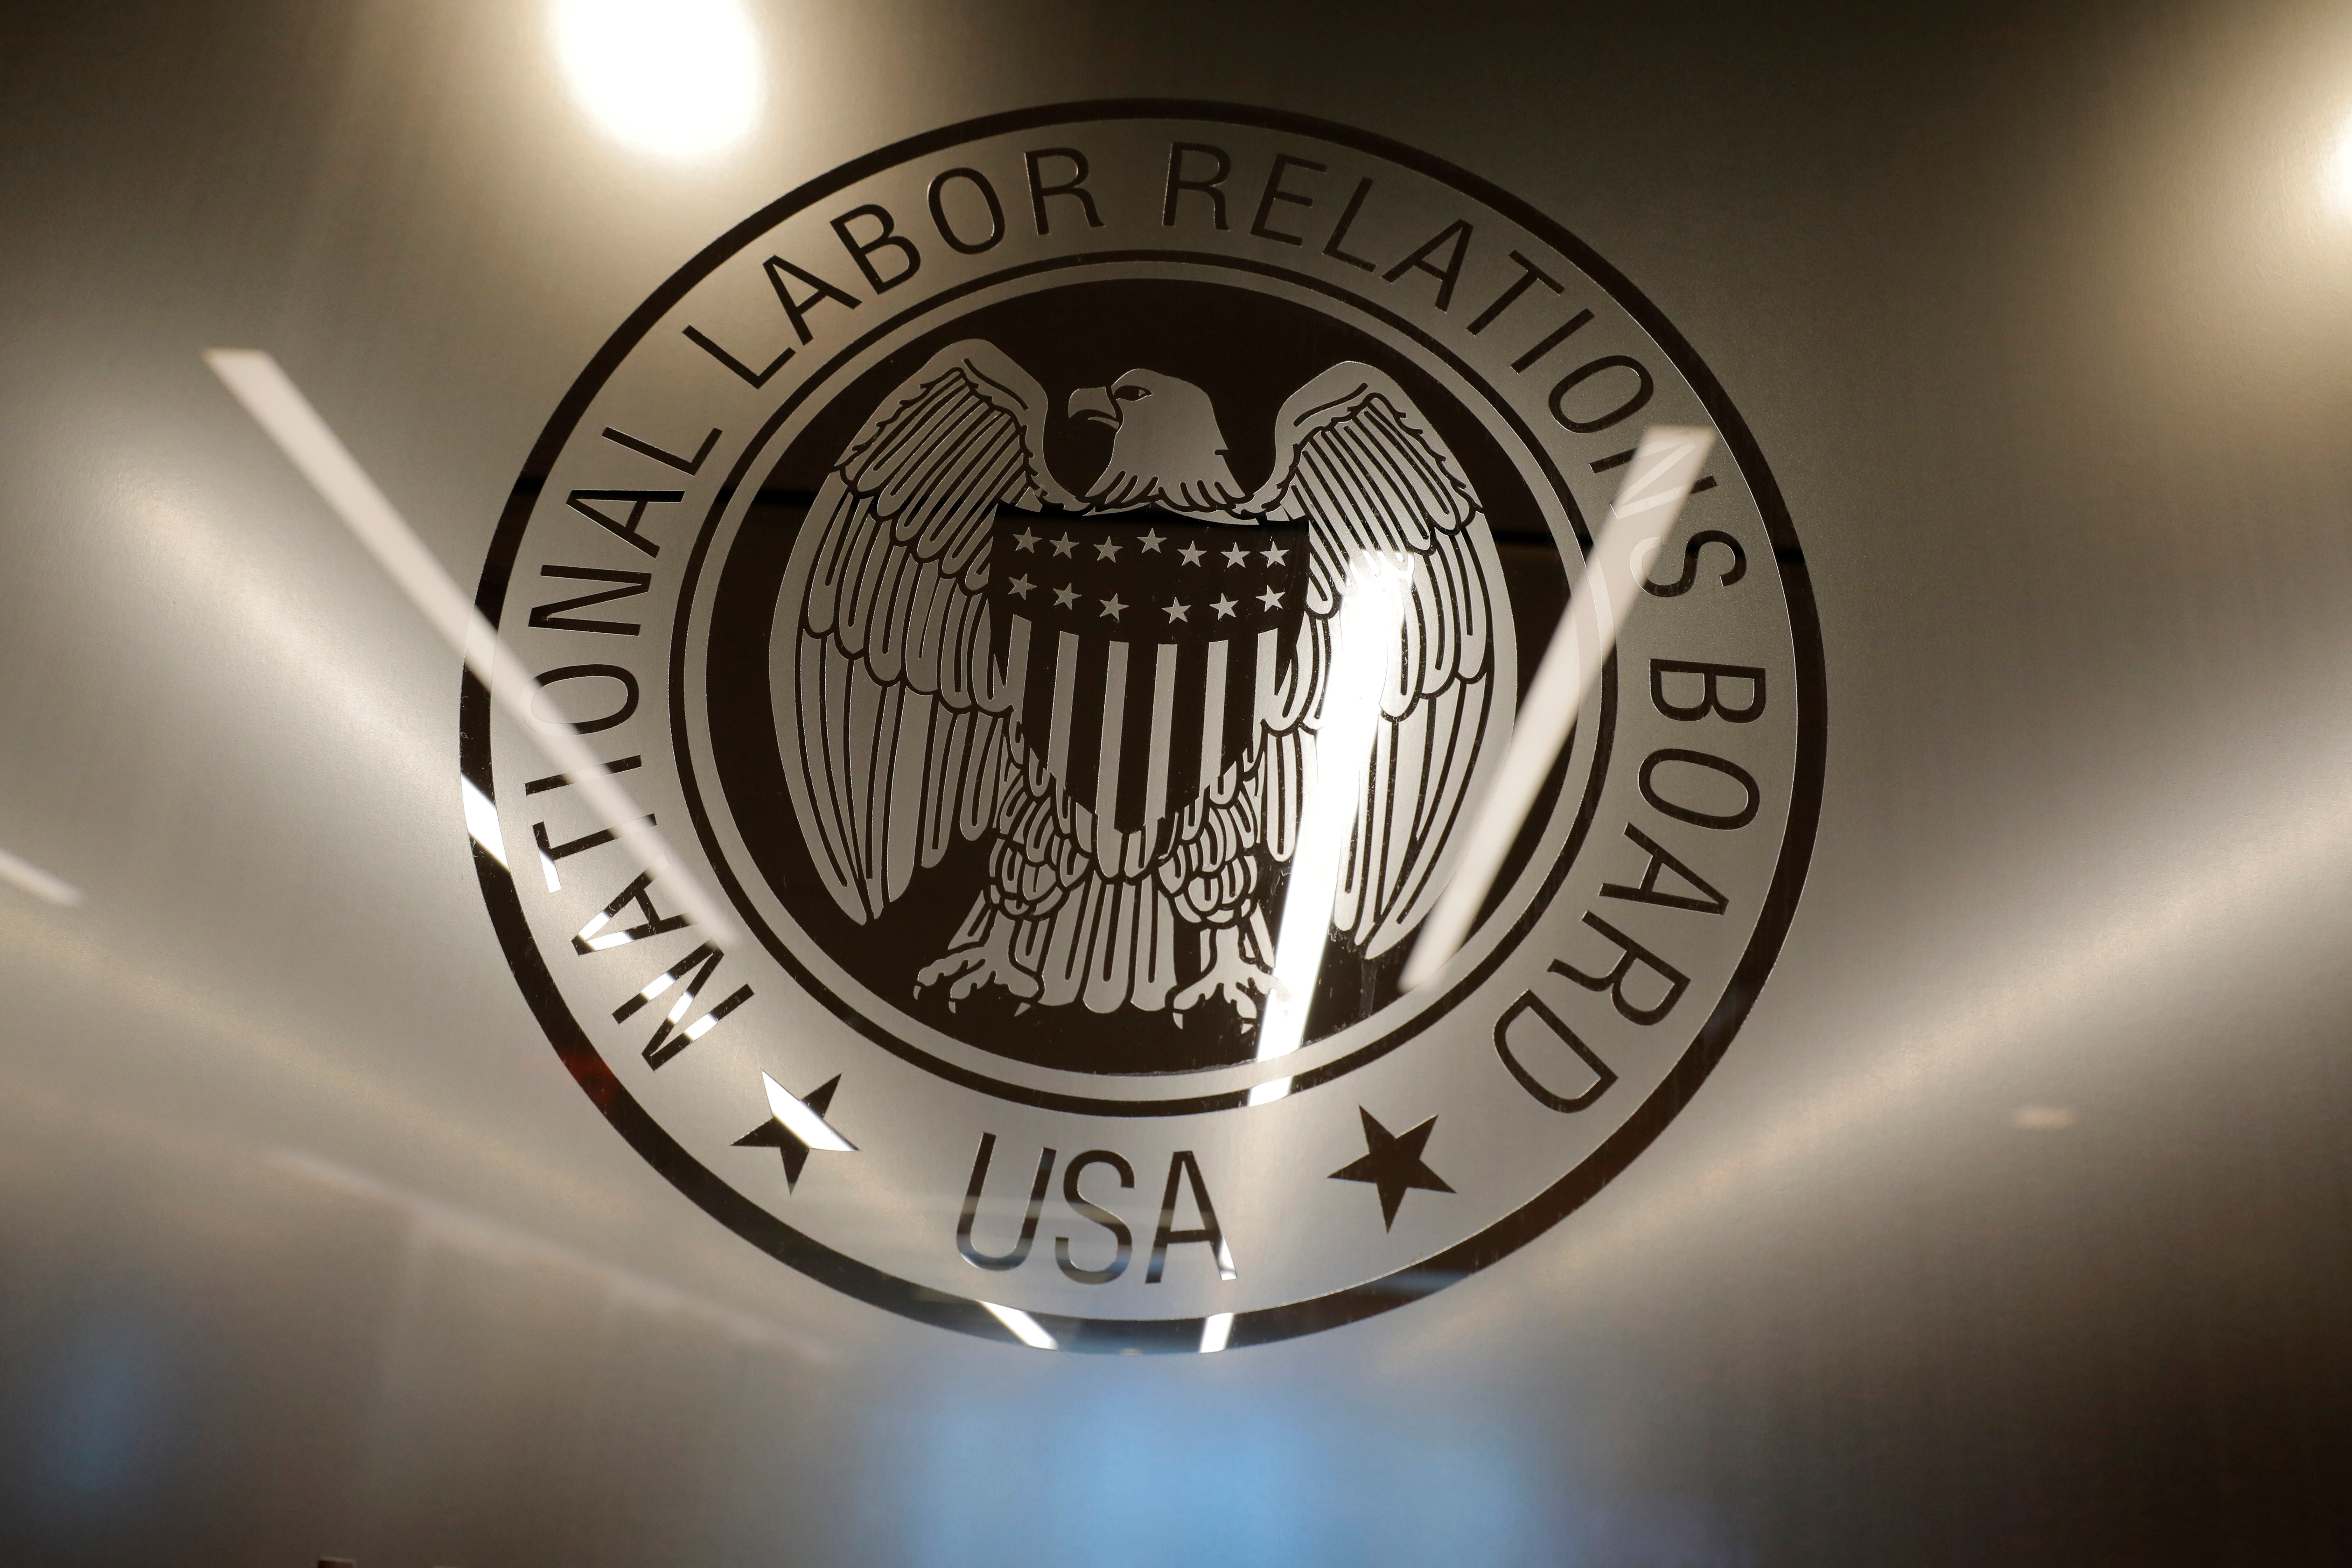 The seal of the National Labor Relations Board (NLRB) is seen at their headquarters in Washington, D.C., U.S., May 14, 2021. REUTERS/Andrew Kelly